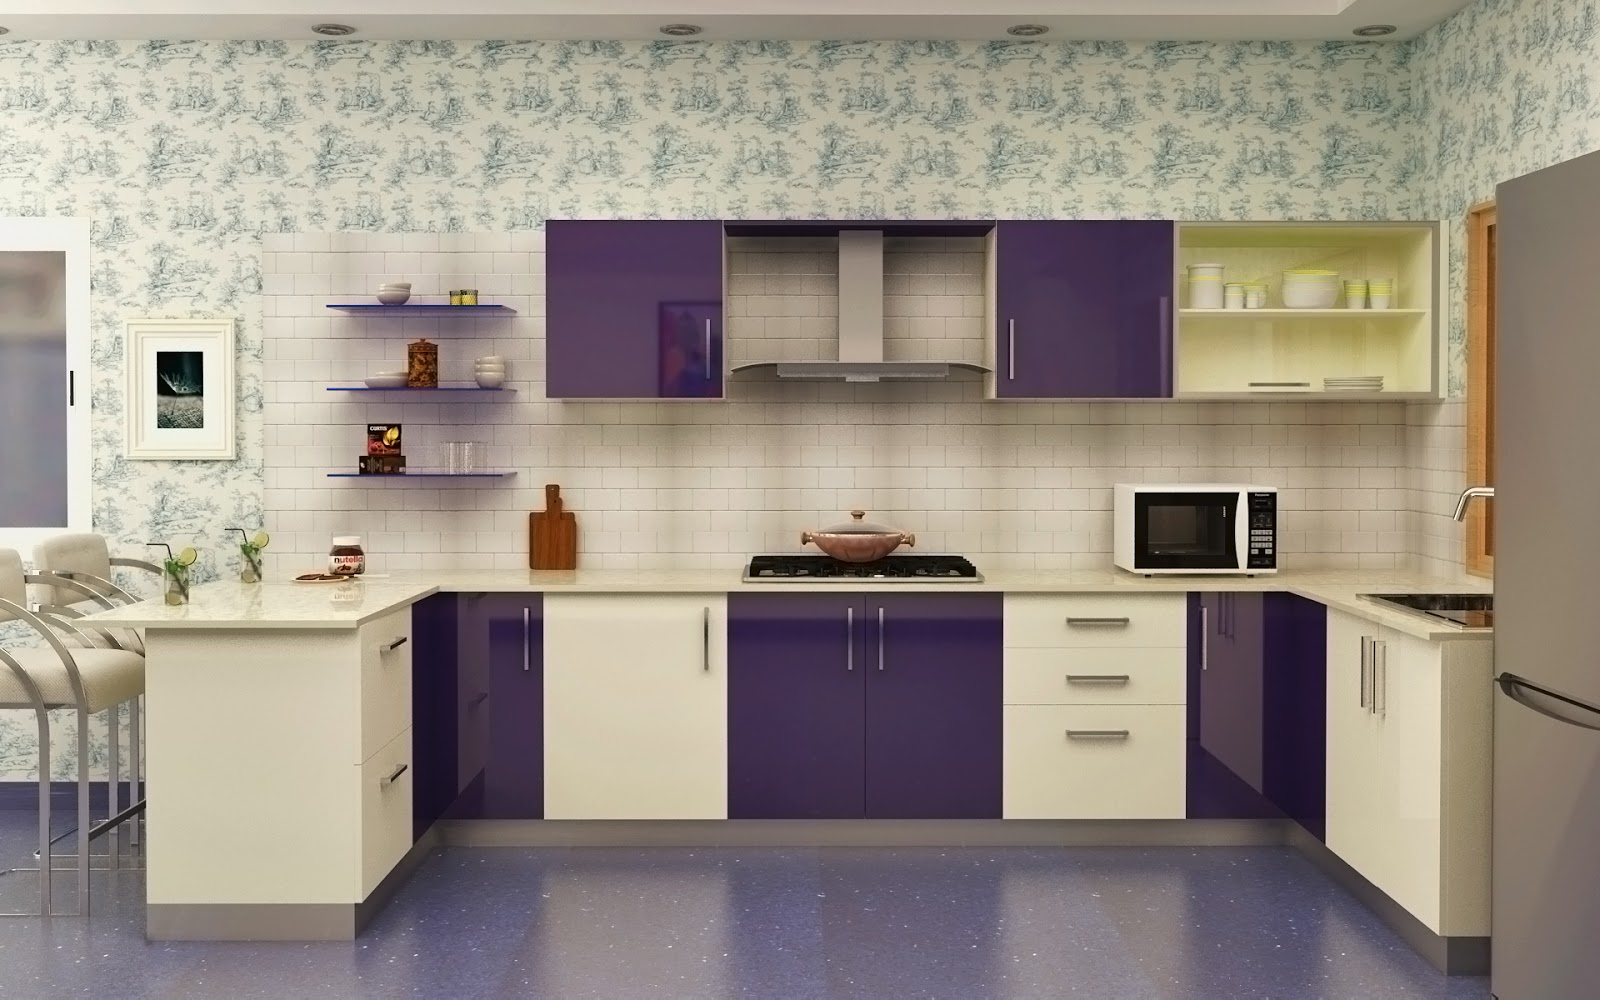 New 100 Modular Kitchen Designs, Cabinets, Colors